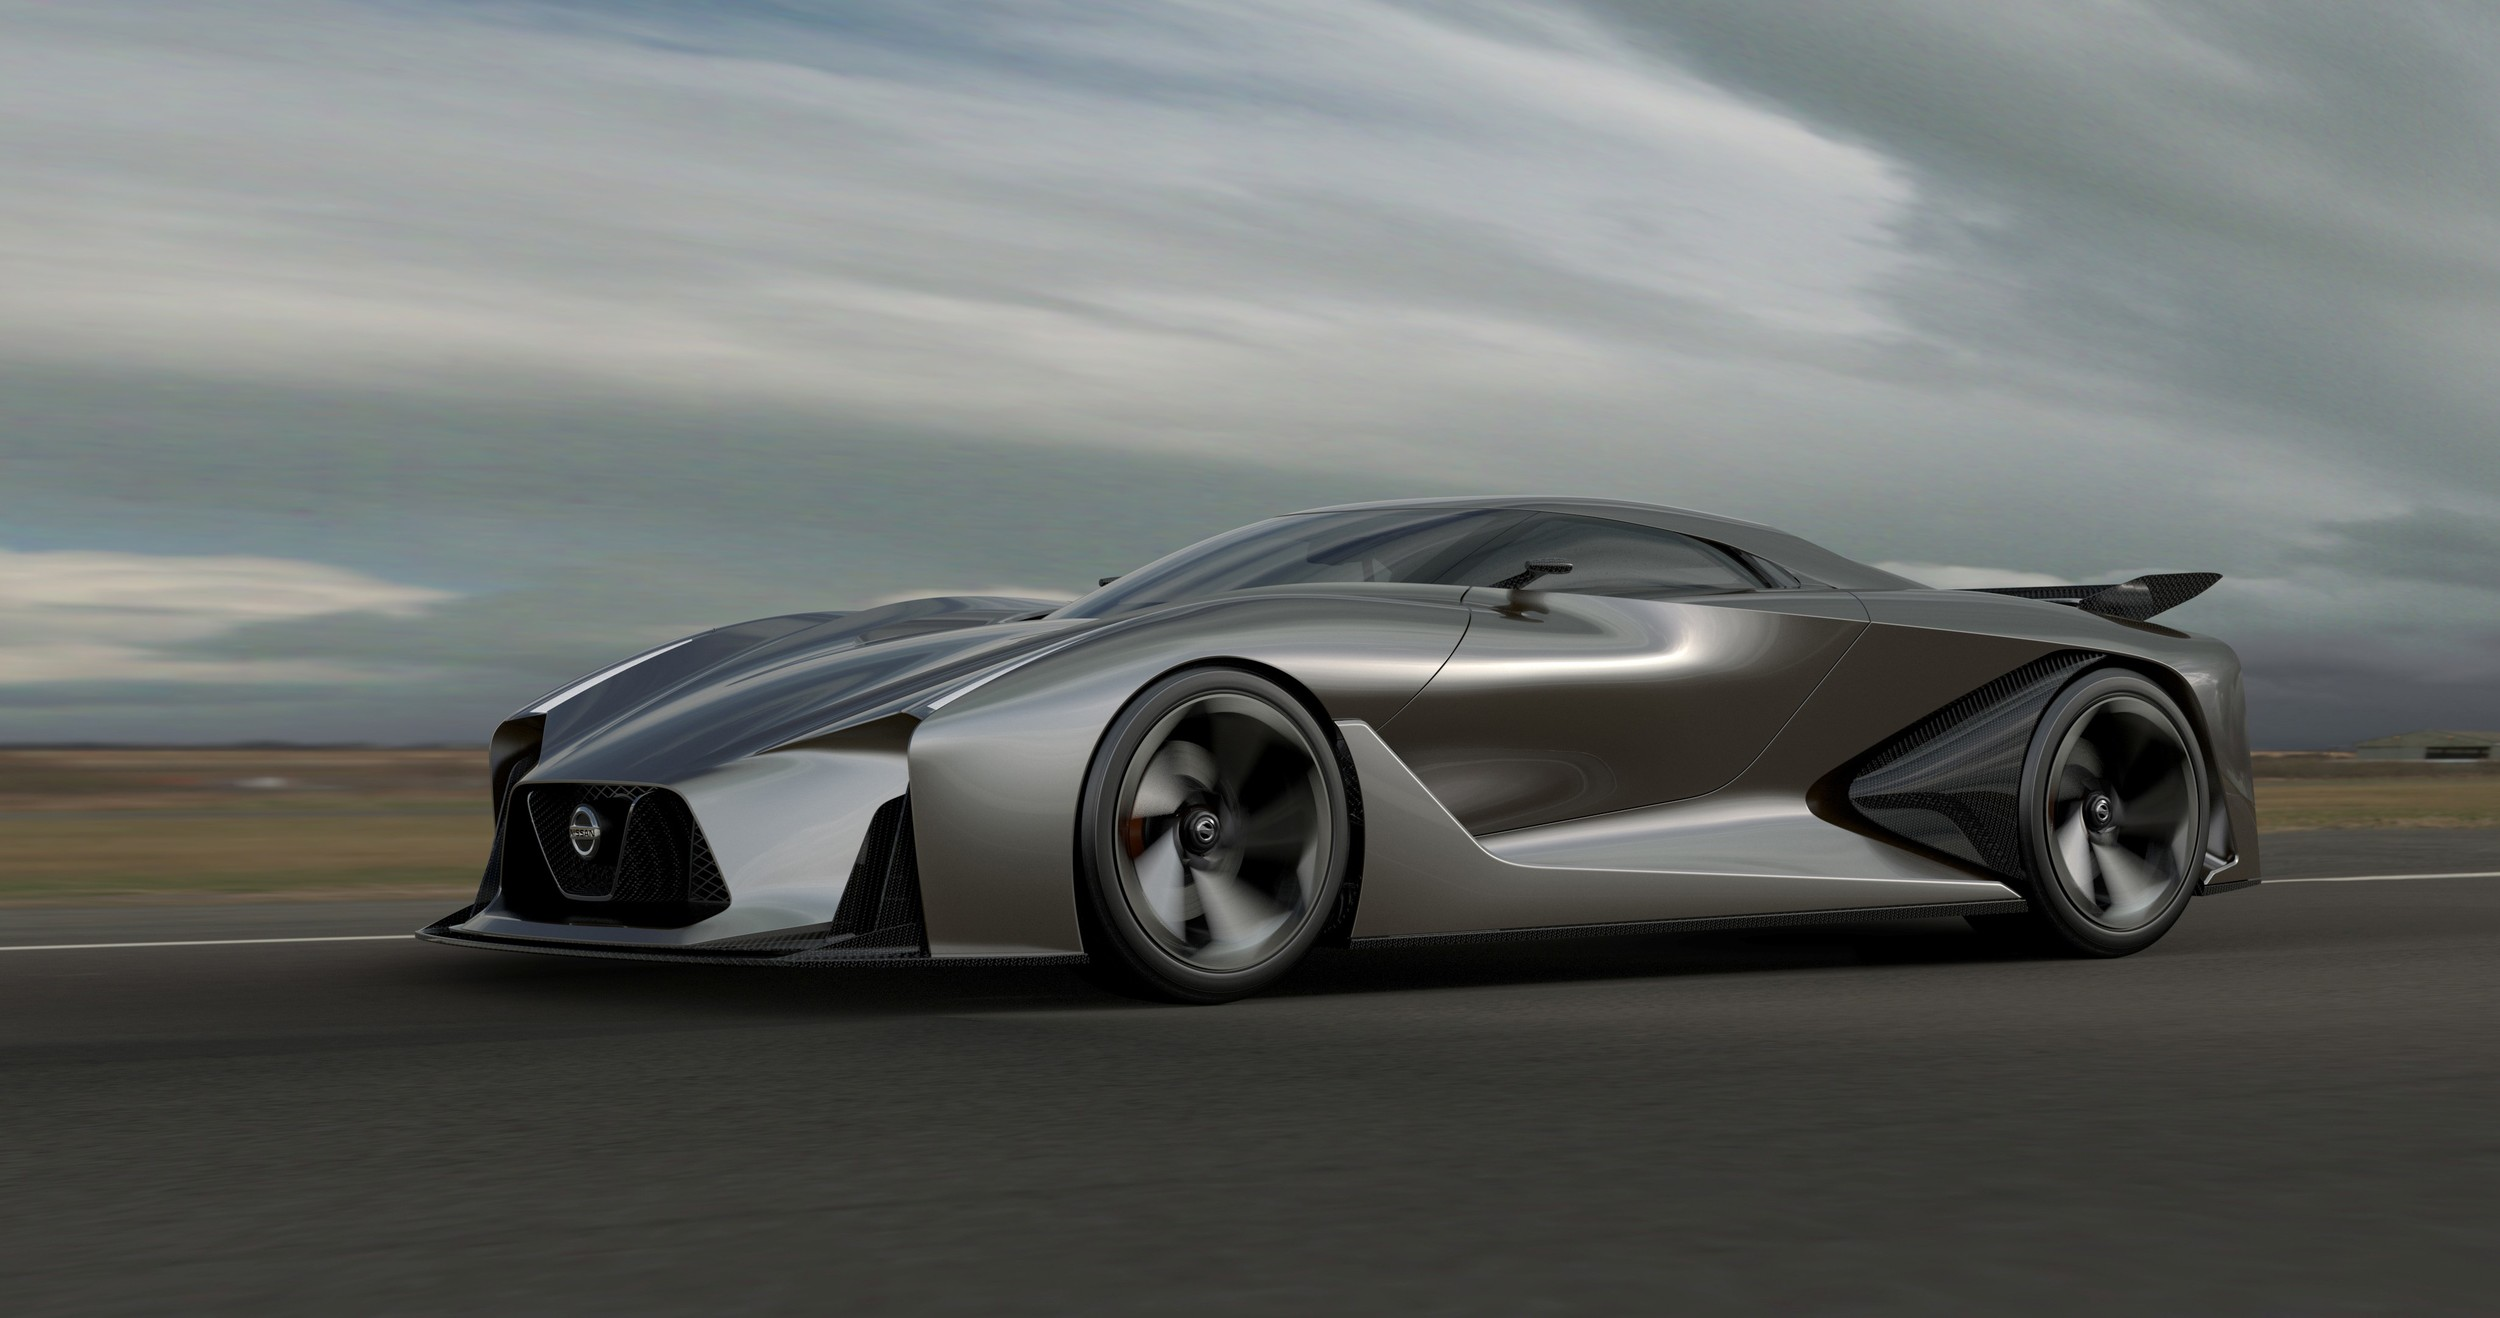 2014_Nissan_Concept_2020_Vision_Gran_Turismo_015_4298.jpg